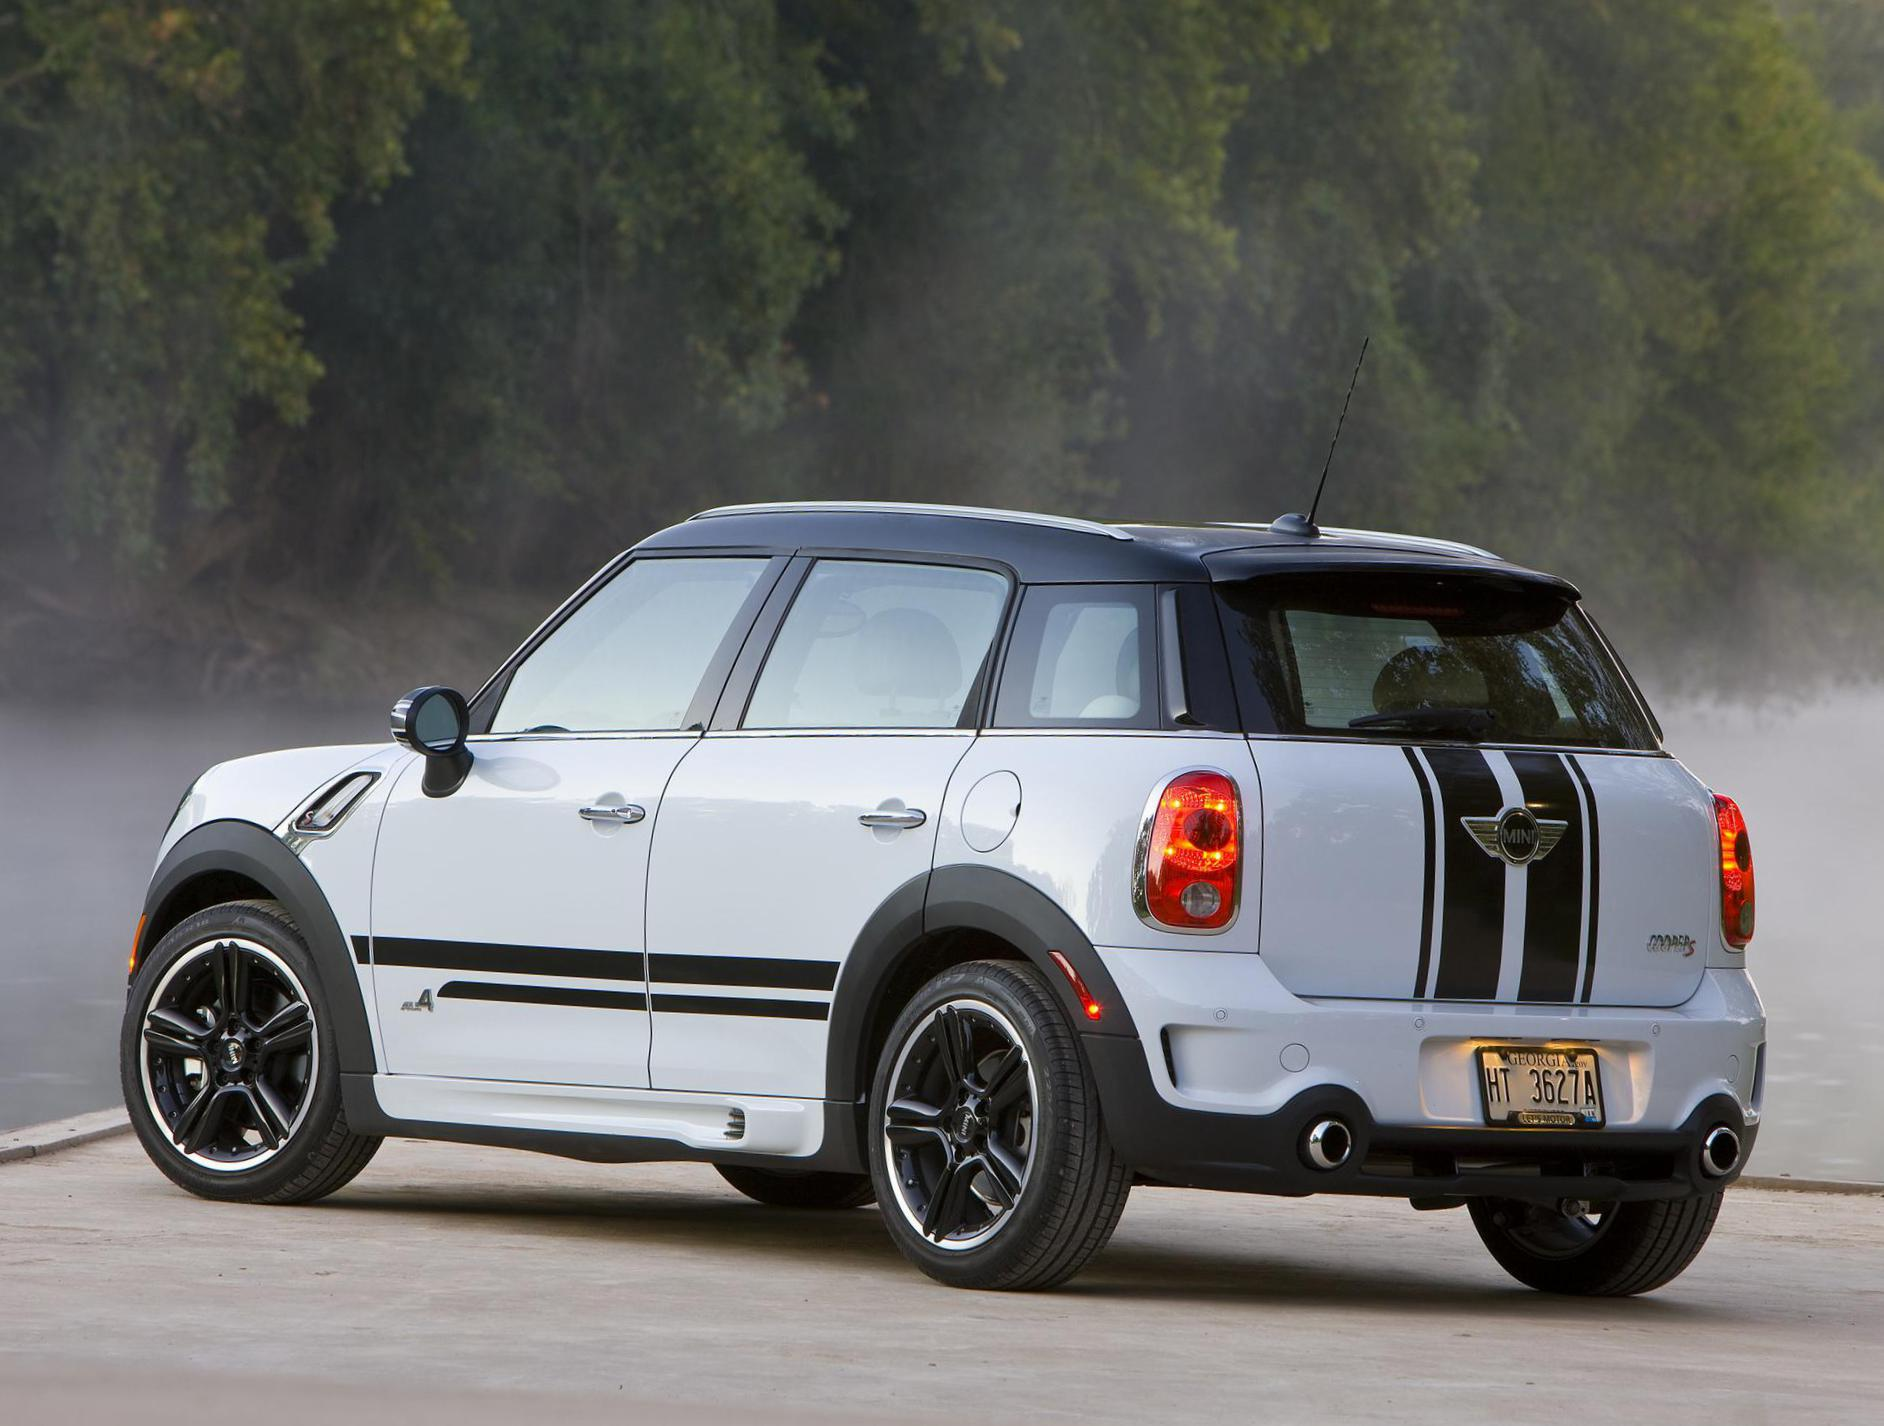 MINI Cooper S Countryman parts 2011